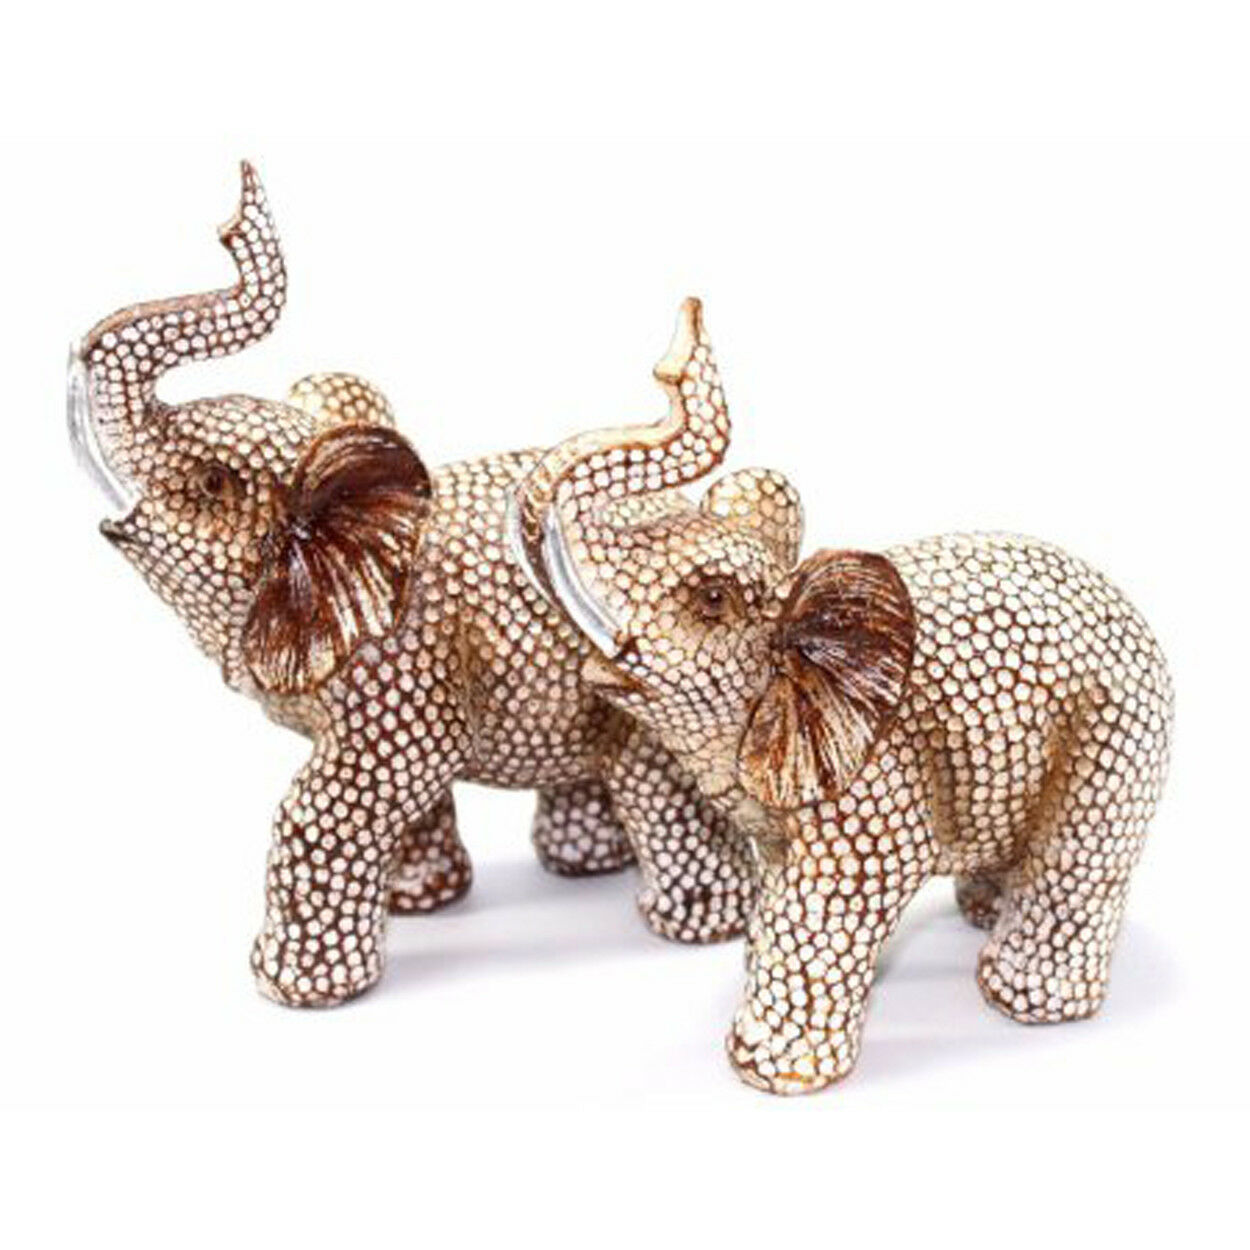 feng shui pair of polyresin elephant trunk statue lucky figurine gift home decor. Black Bedroom Furniture Sets. Home Design Ideas